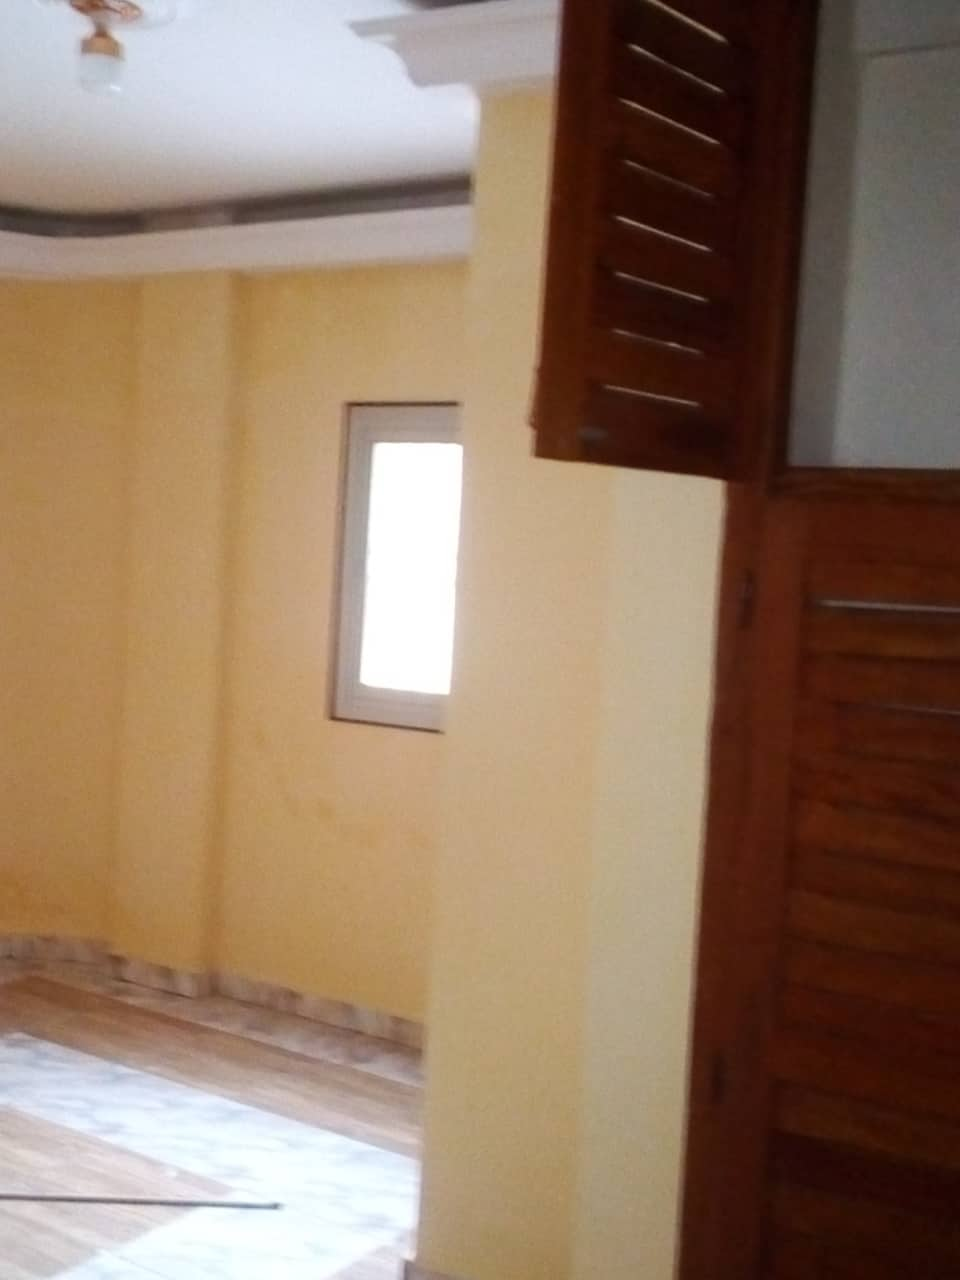 Apartment to rent - Yaoundé, Bastos, pas loin de lambassade du nigeria - 1 living room(s), 3 bedroom(s), 3 bathroom(s) - 400 000 FCFA / month